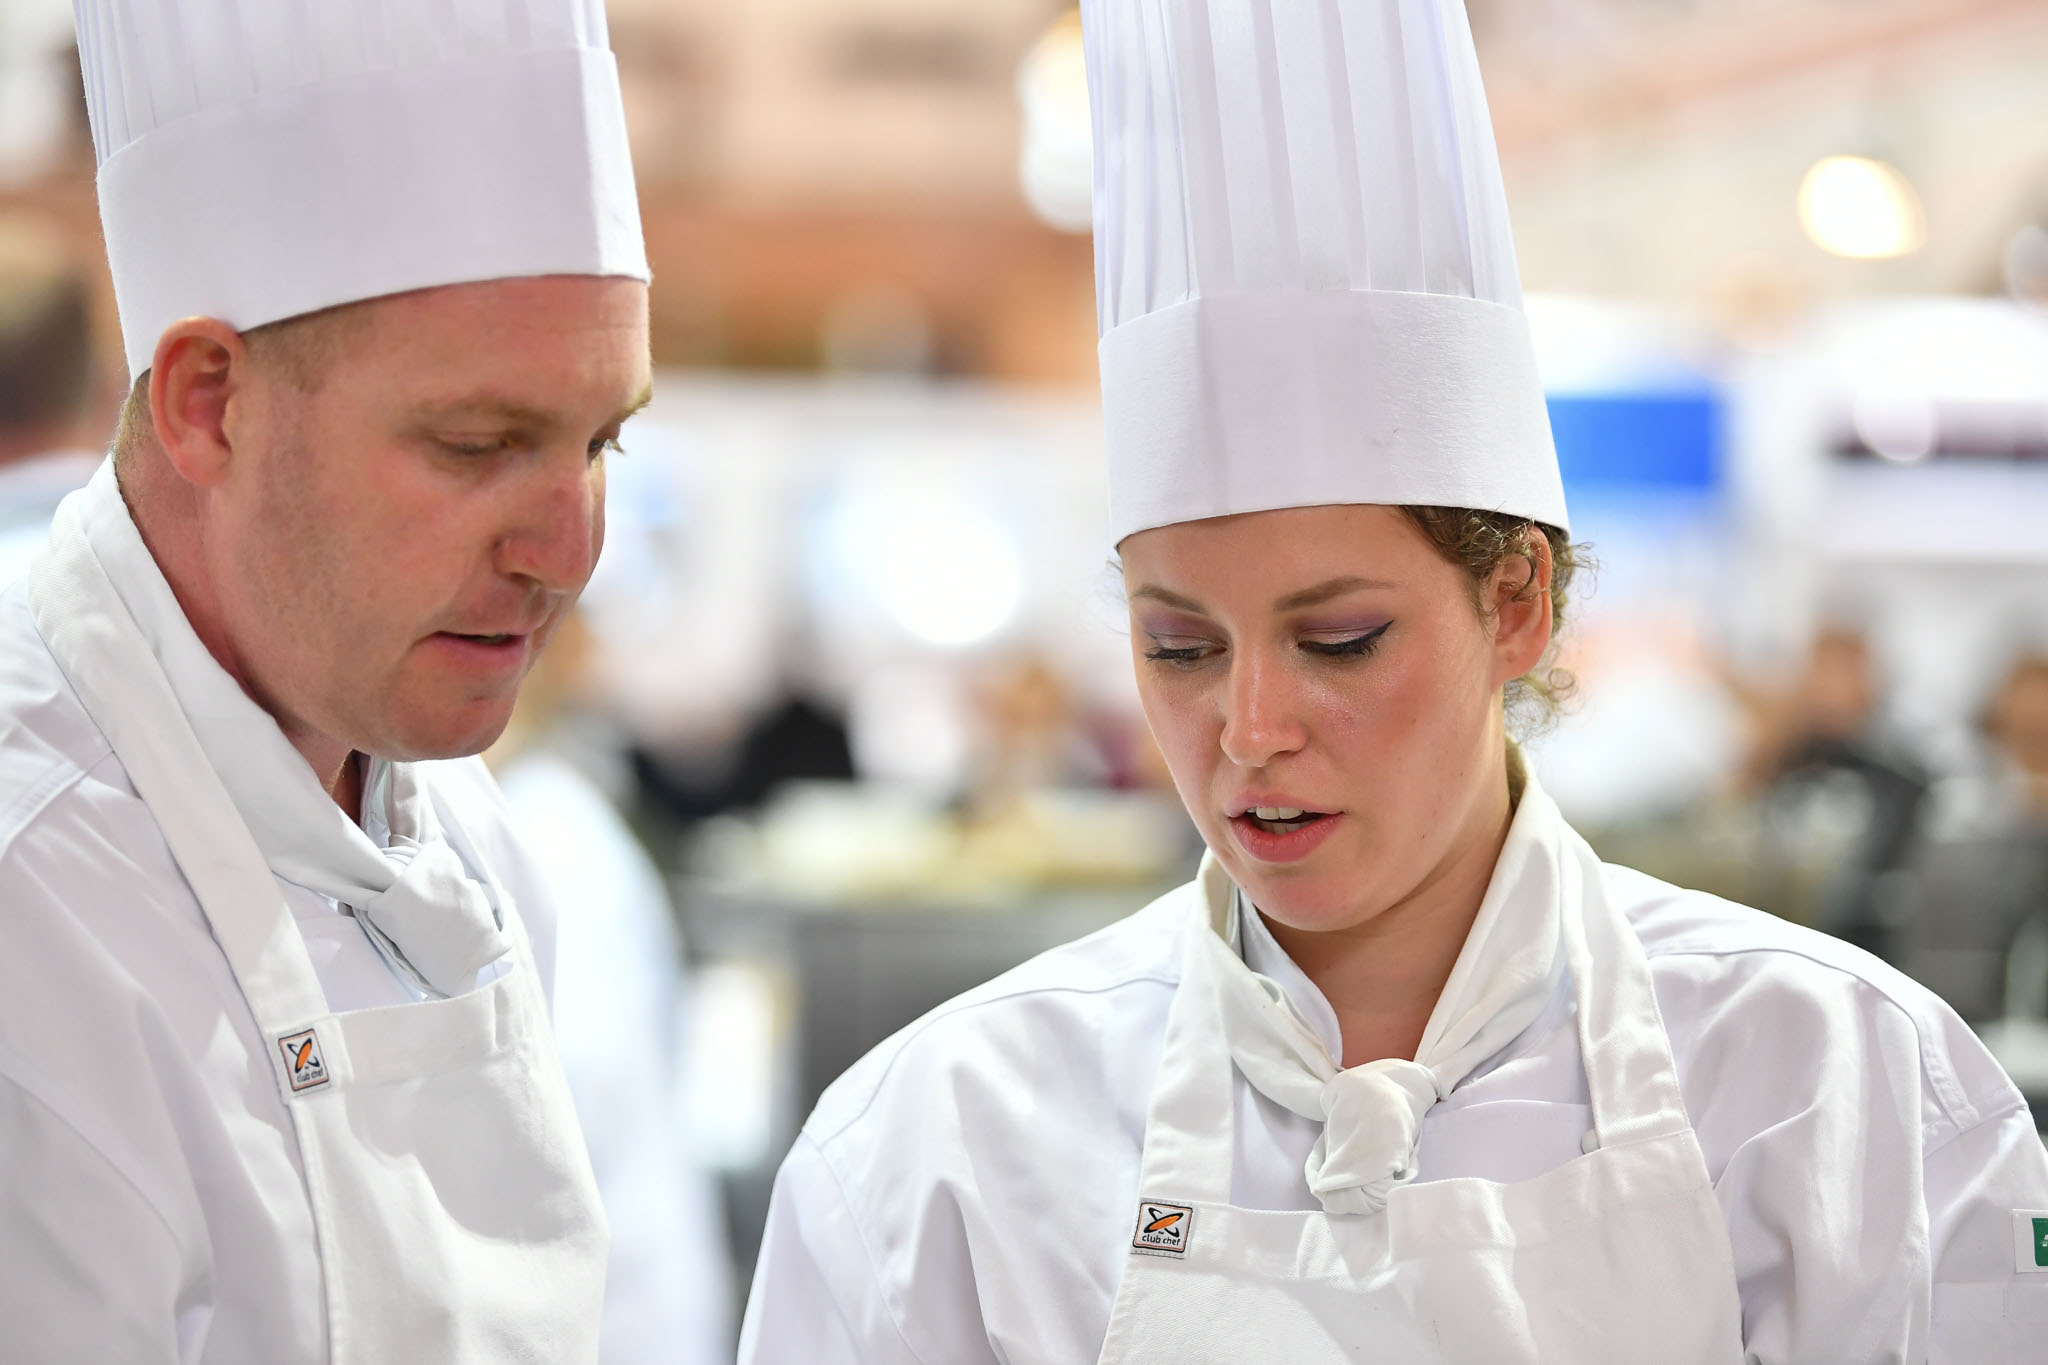 Melbourne, 30 May 2017 - Michael Cole and commis chef Laura Skvor of the Georgie Bass Café & Cookery in Flinders in discussions at the Australian selection trials of the Bocuse d'Or culinary competition held during the Food Service Australia show at the Royal Exhibition Building in Melbourne, Australia. Photo Sydney Low